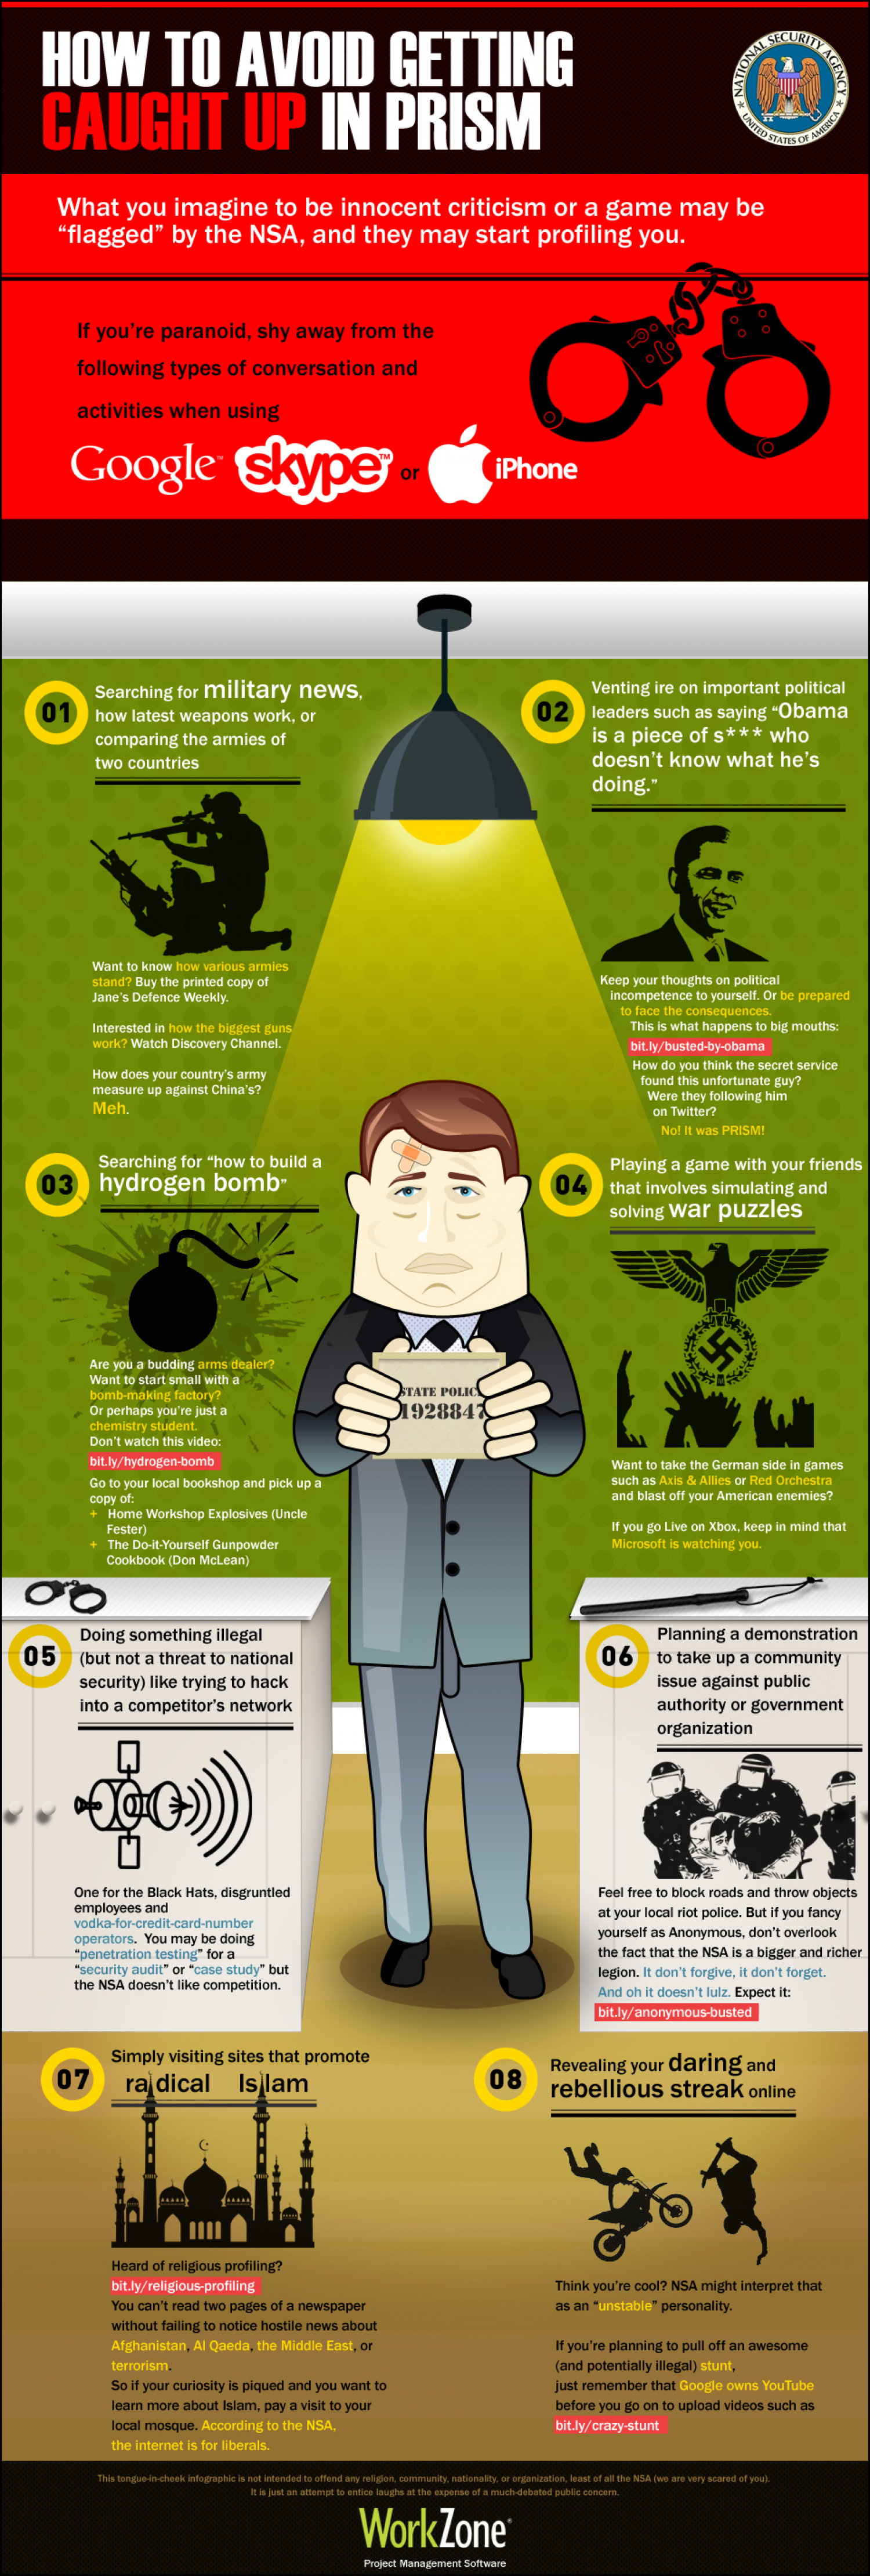 How to Avoid Getting Caught Up in PRISM Infographic